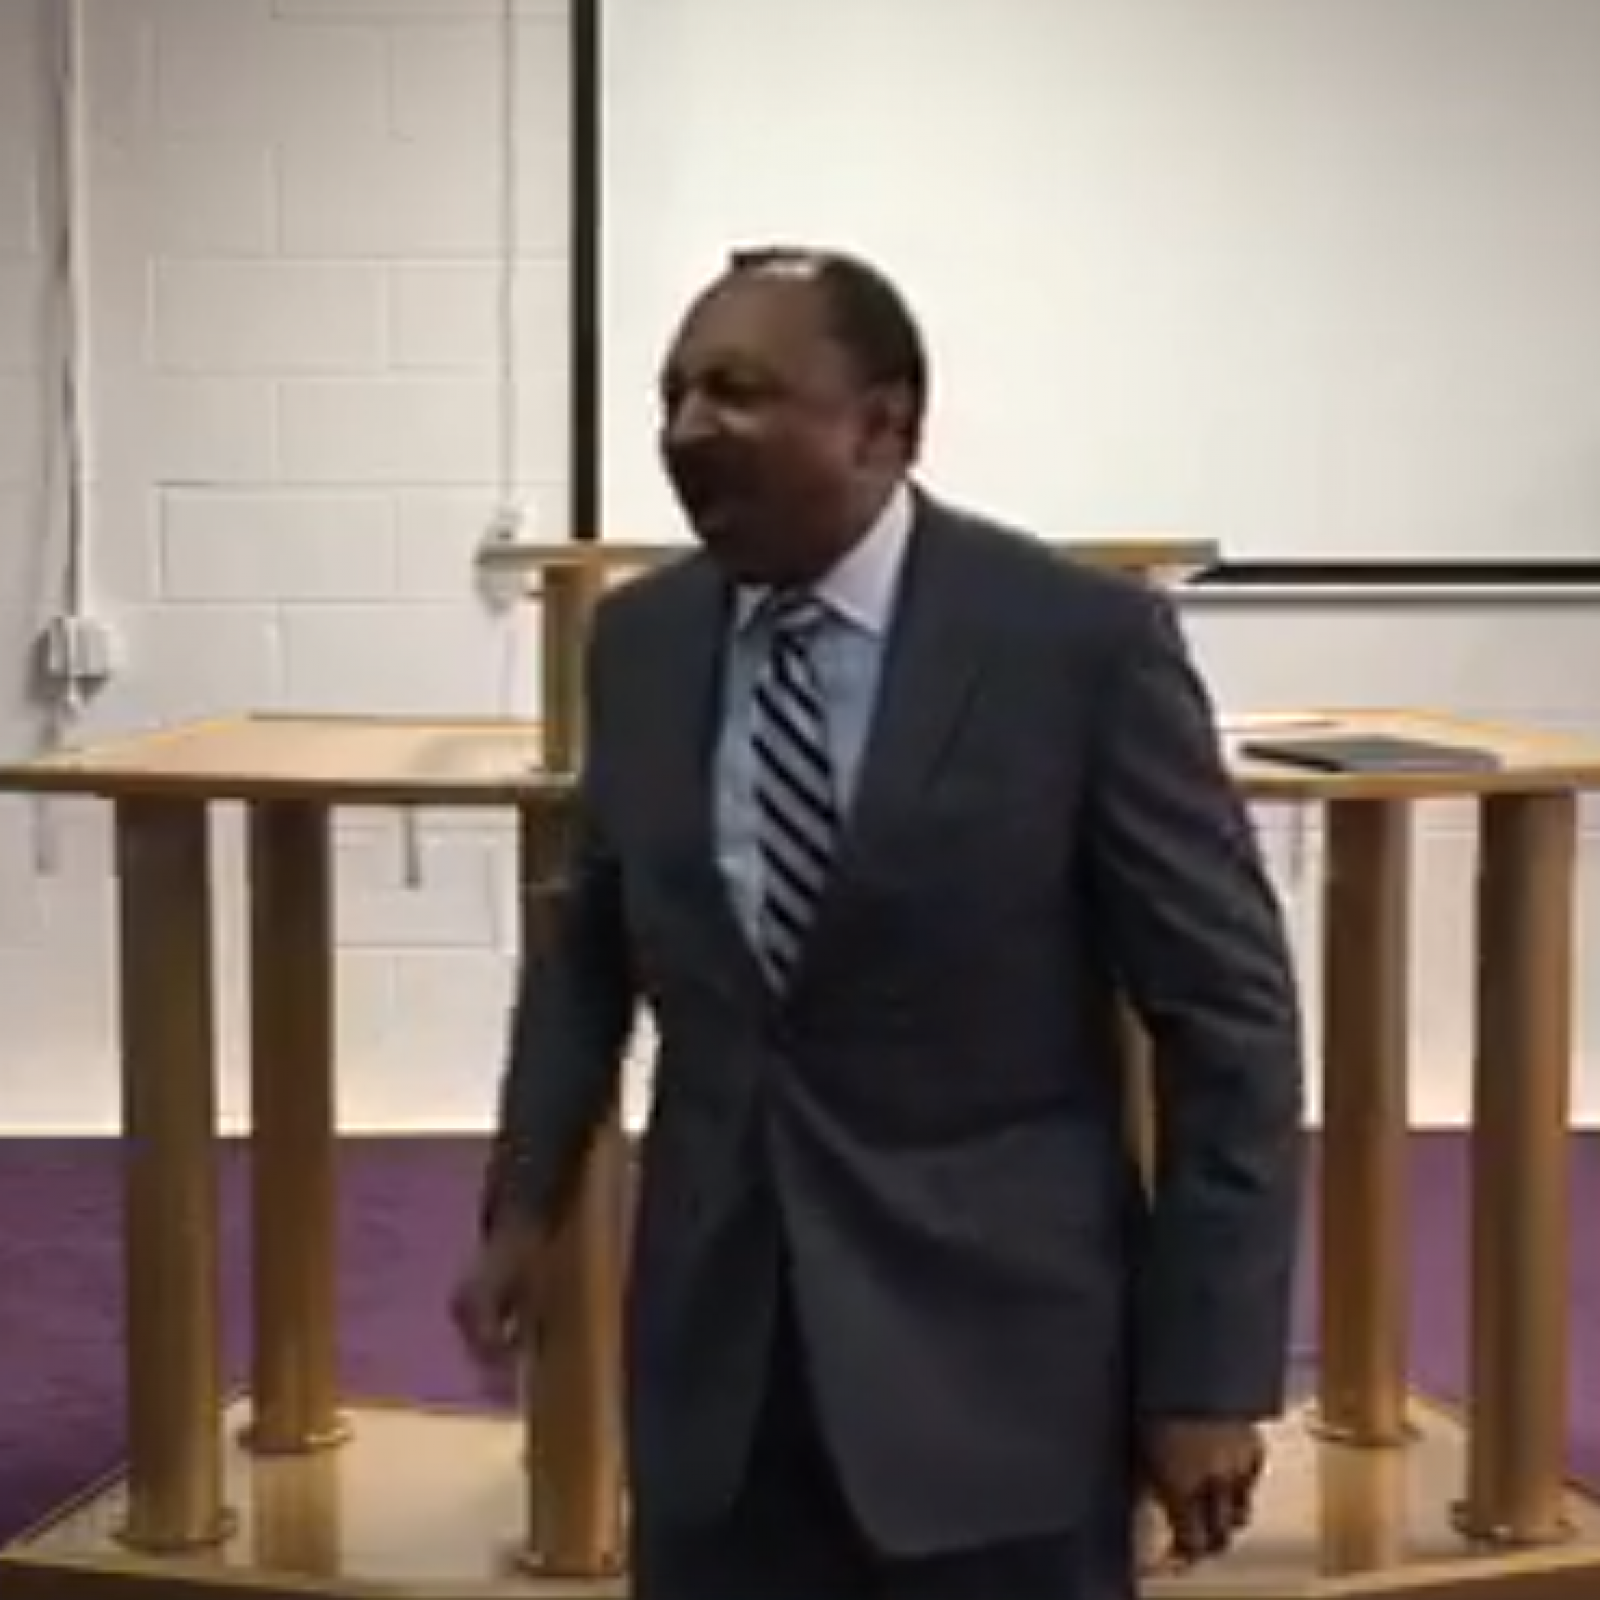 Pastor Says Gay People 'Appropriate' the Rainbow from God